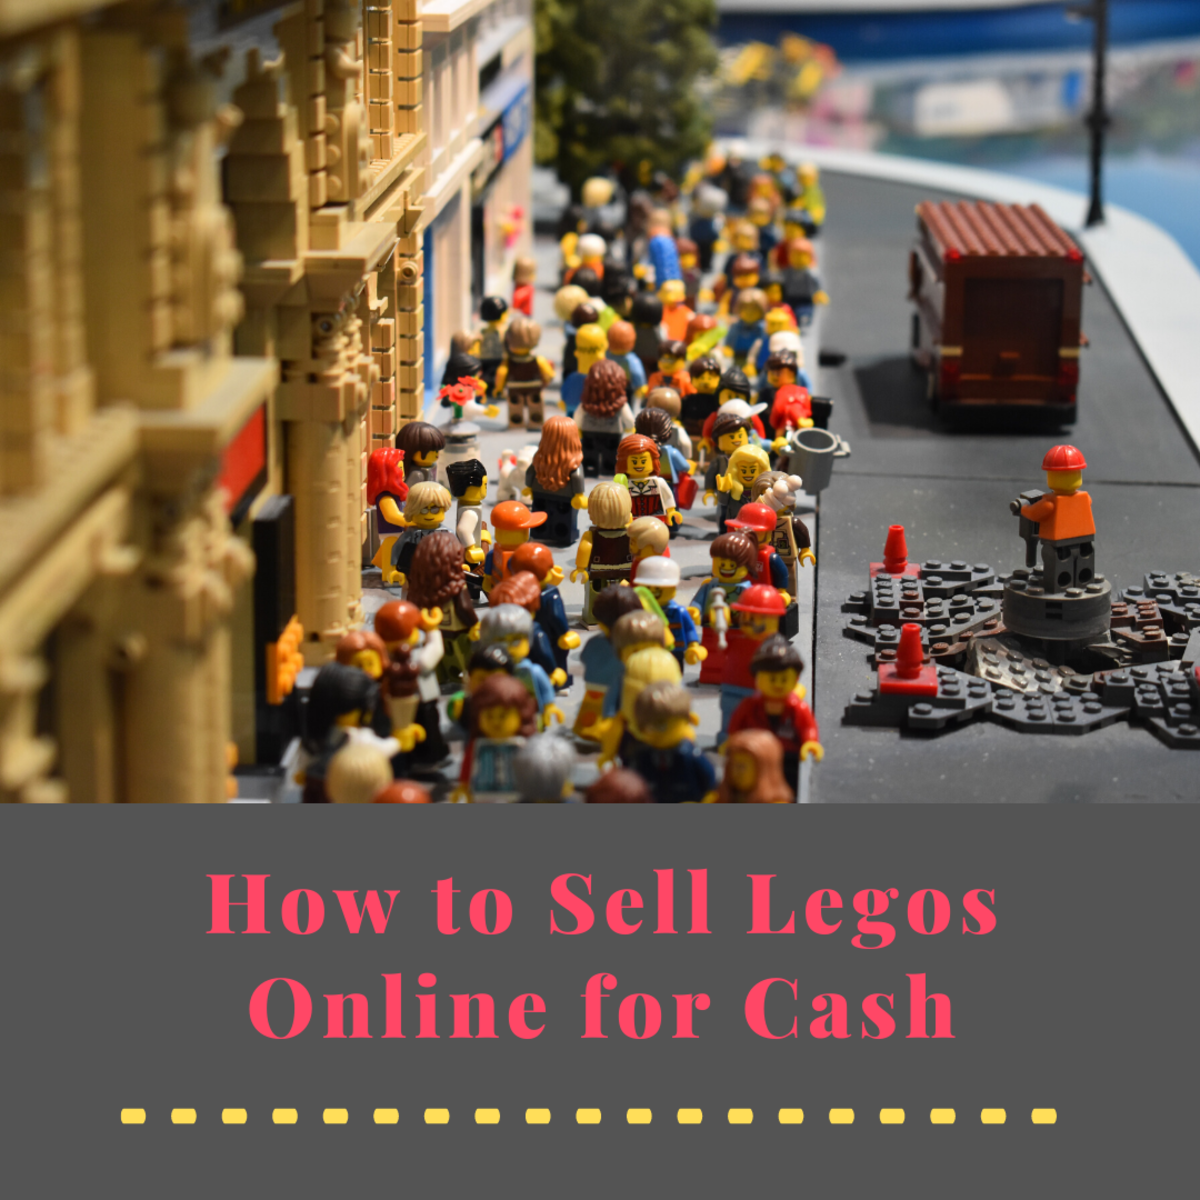 If you learn how to do it right, you can make good money by selling your legos online.